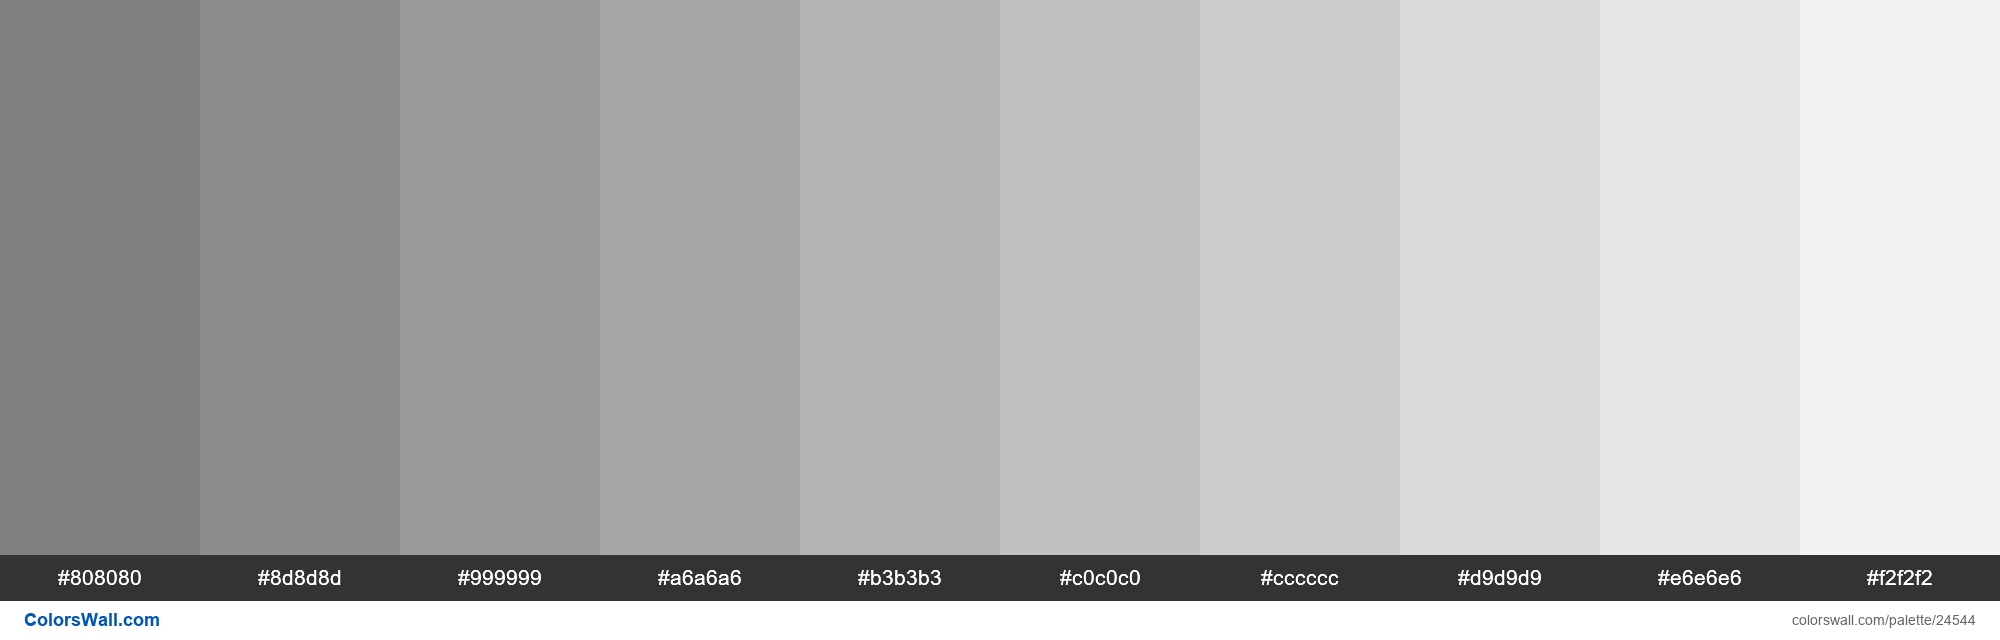 Tints of Grey #808080 hex color - #24544